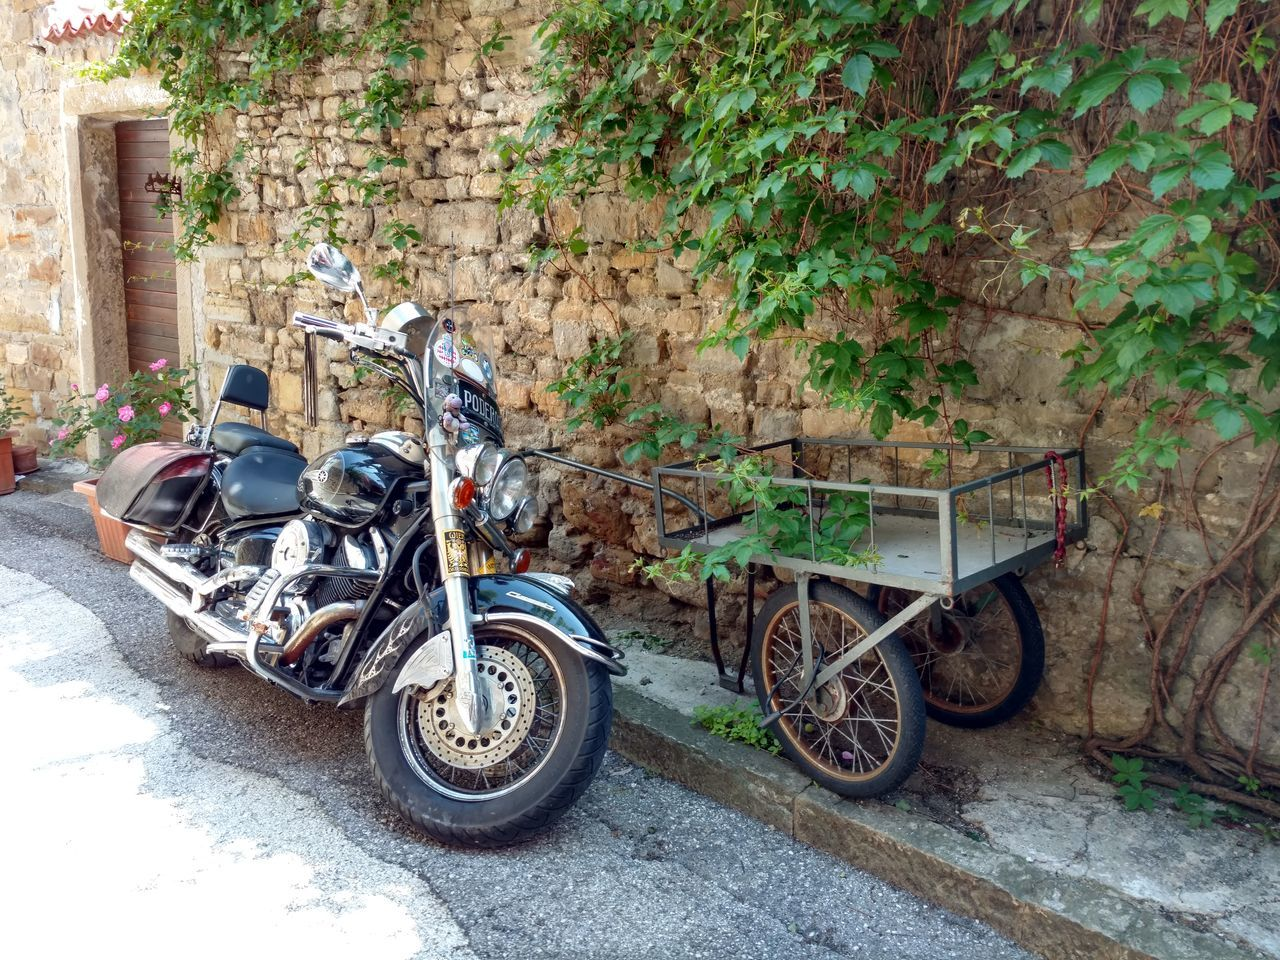 Old and New 😁 Popolari City Life EyeEm Gallery The Architect - 2017 EyeEm Awards The Great Outdoors - 2017 EyeEm Awards Italian Motorcycling Motorcyle Transportation Mode Of Transport No People Day EyeEm Best Shots Architecture Muggia Muggialive EyeEmNewHere New Old